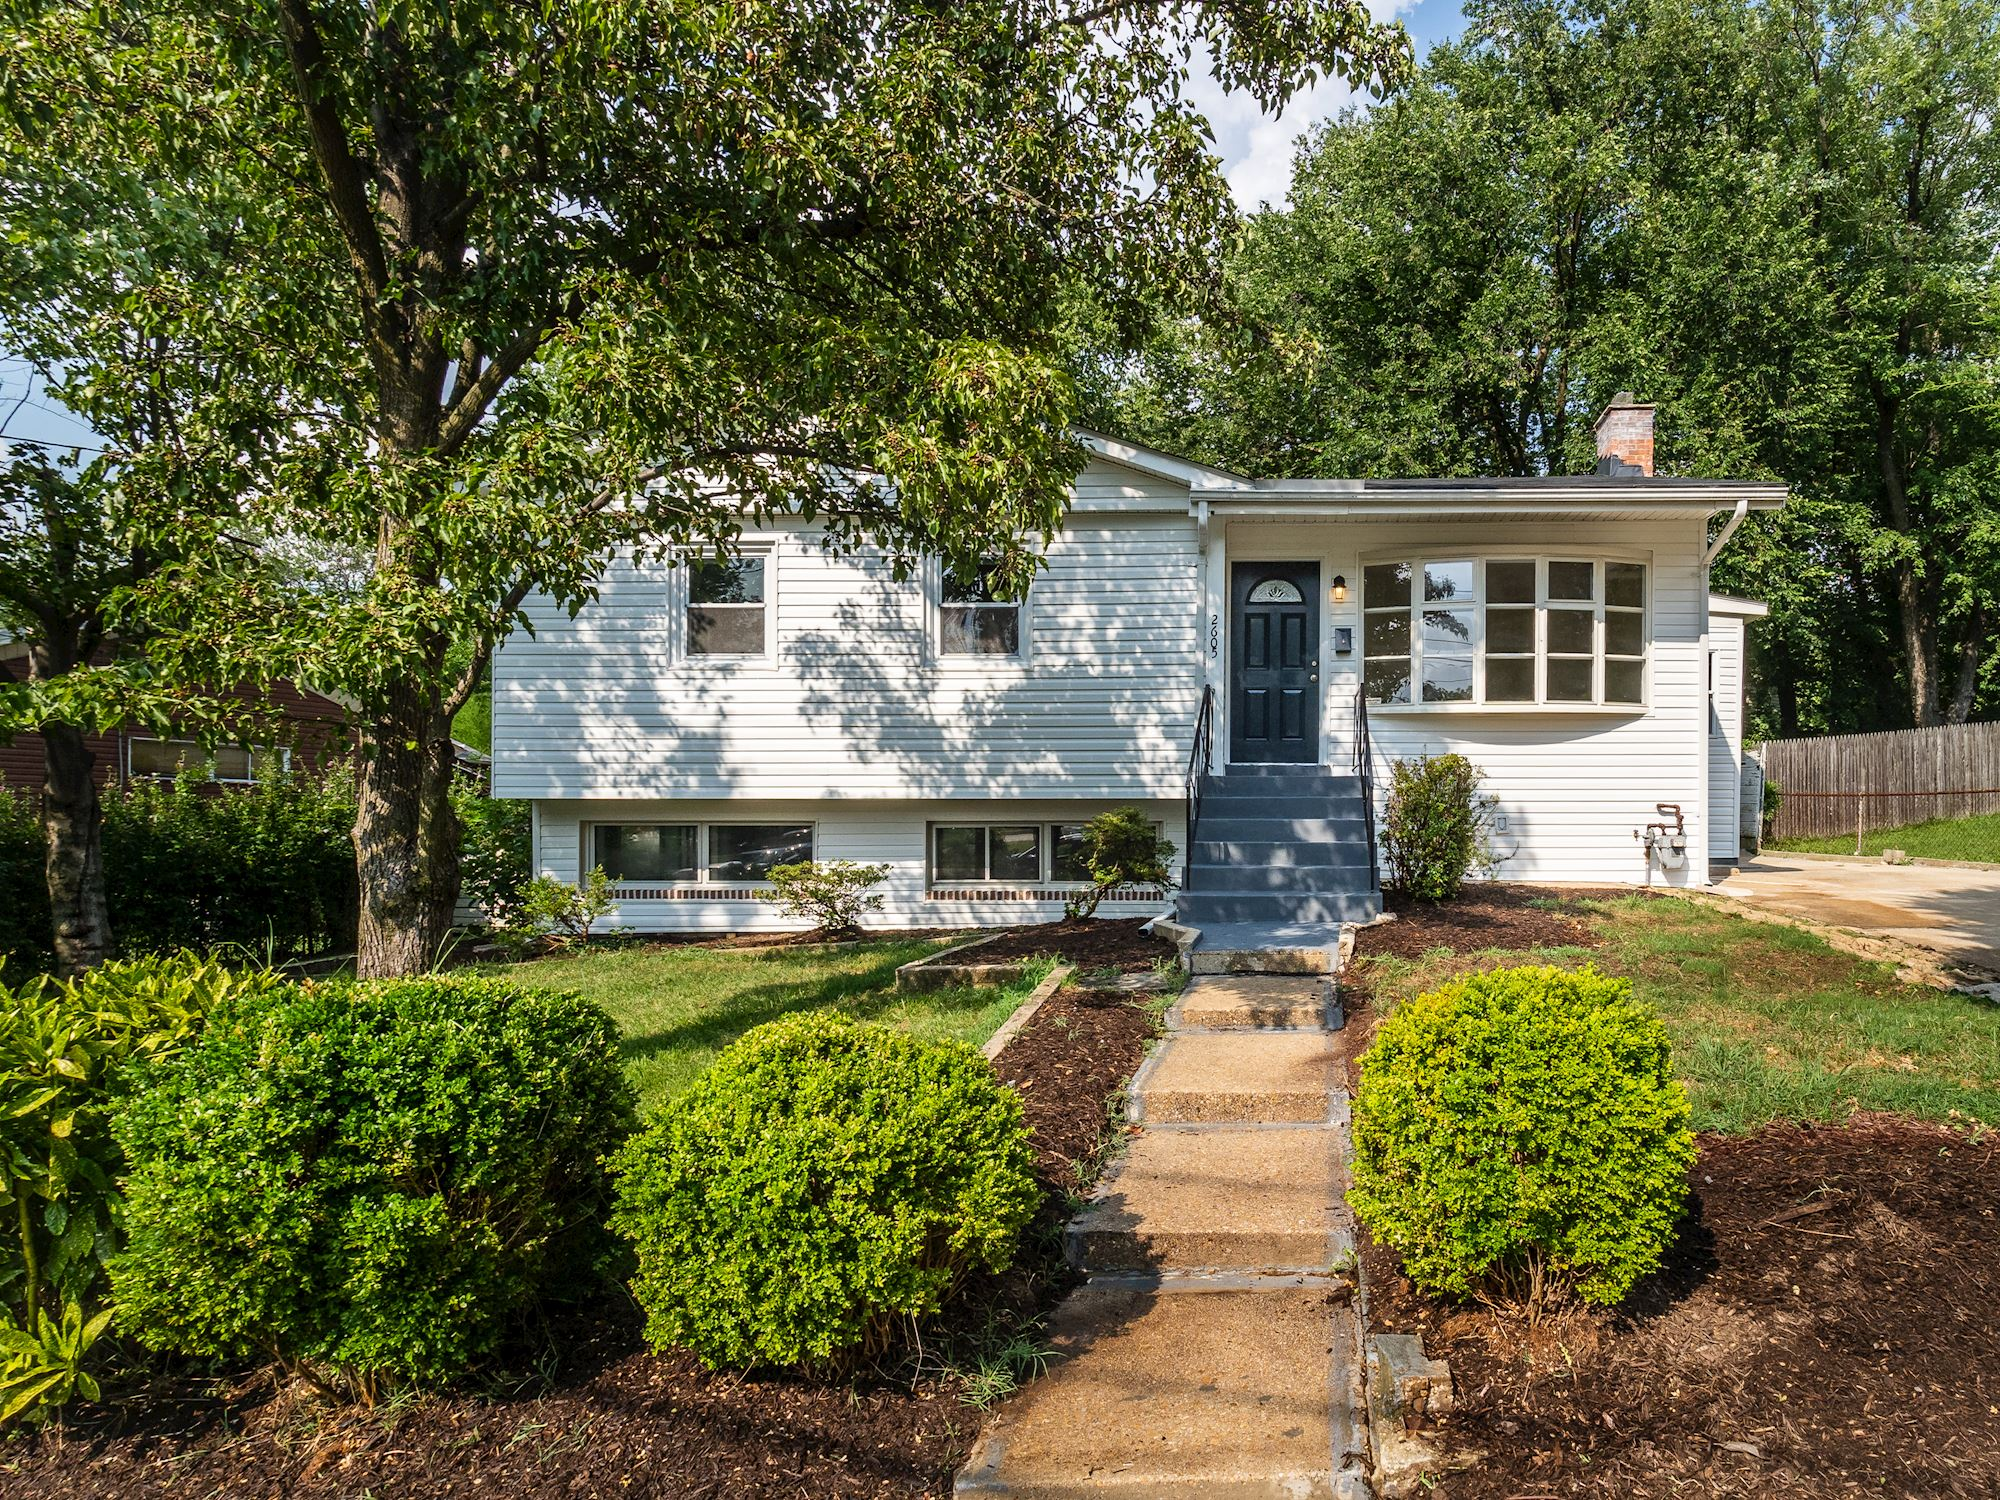 NEW LISTING: 4 BD Beautifully-Maintained and Upgraded Home in Silver Spring, MD